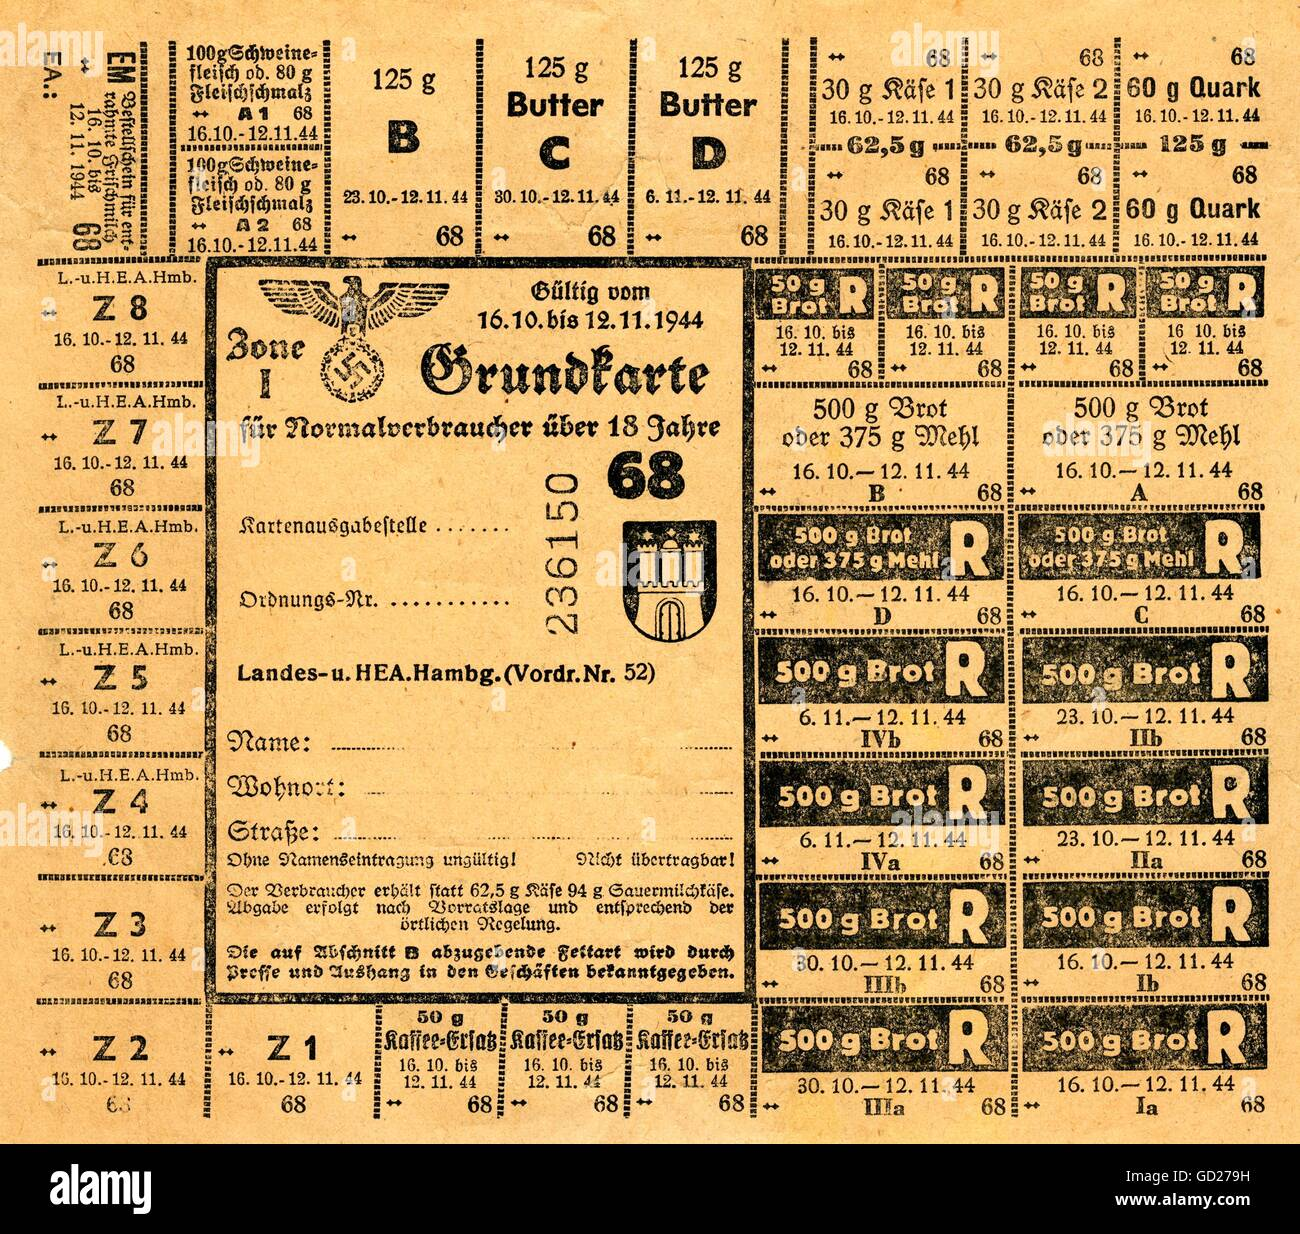 Ration Cards Stockfotos & Ration Cards Bilder - Seite 2 - Alamy